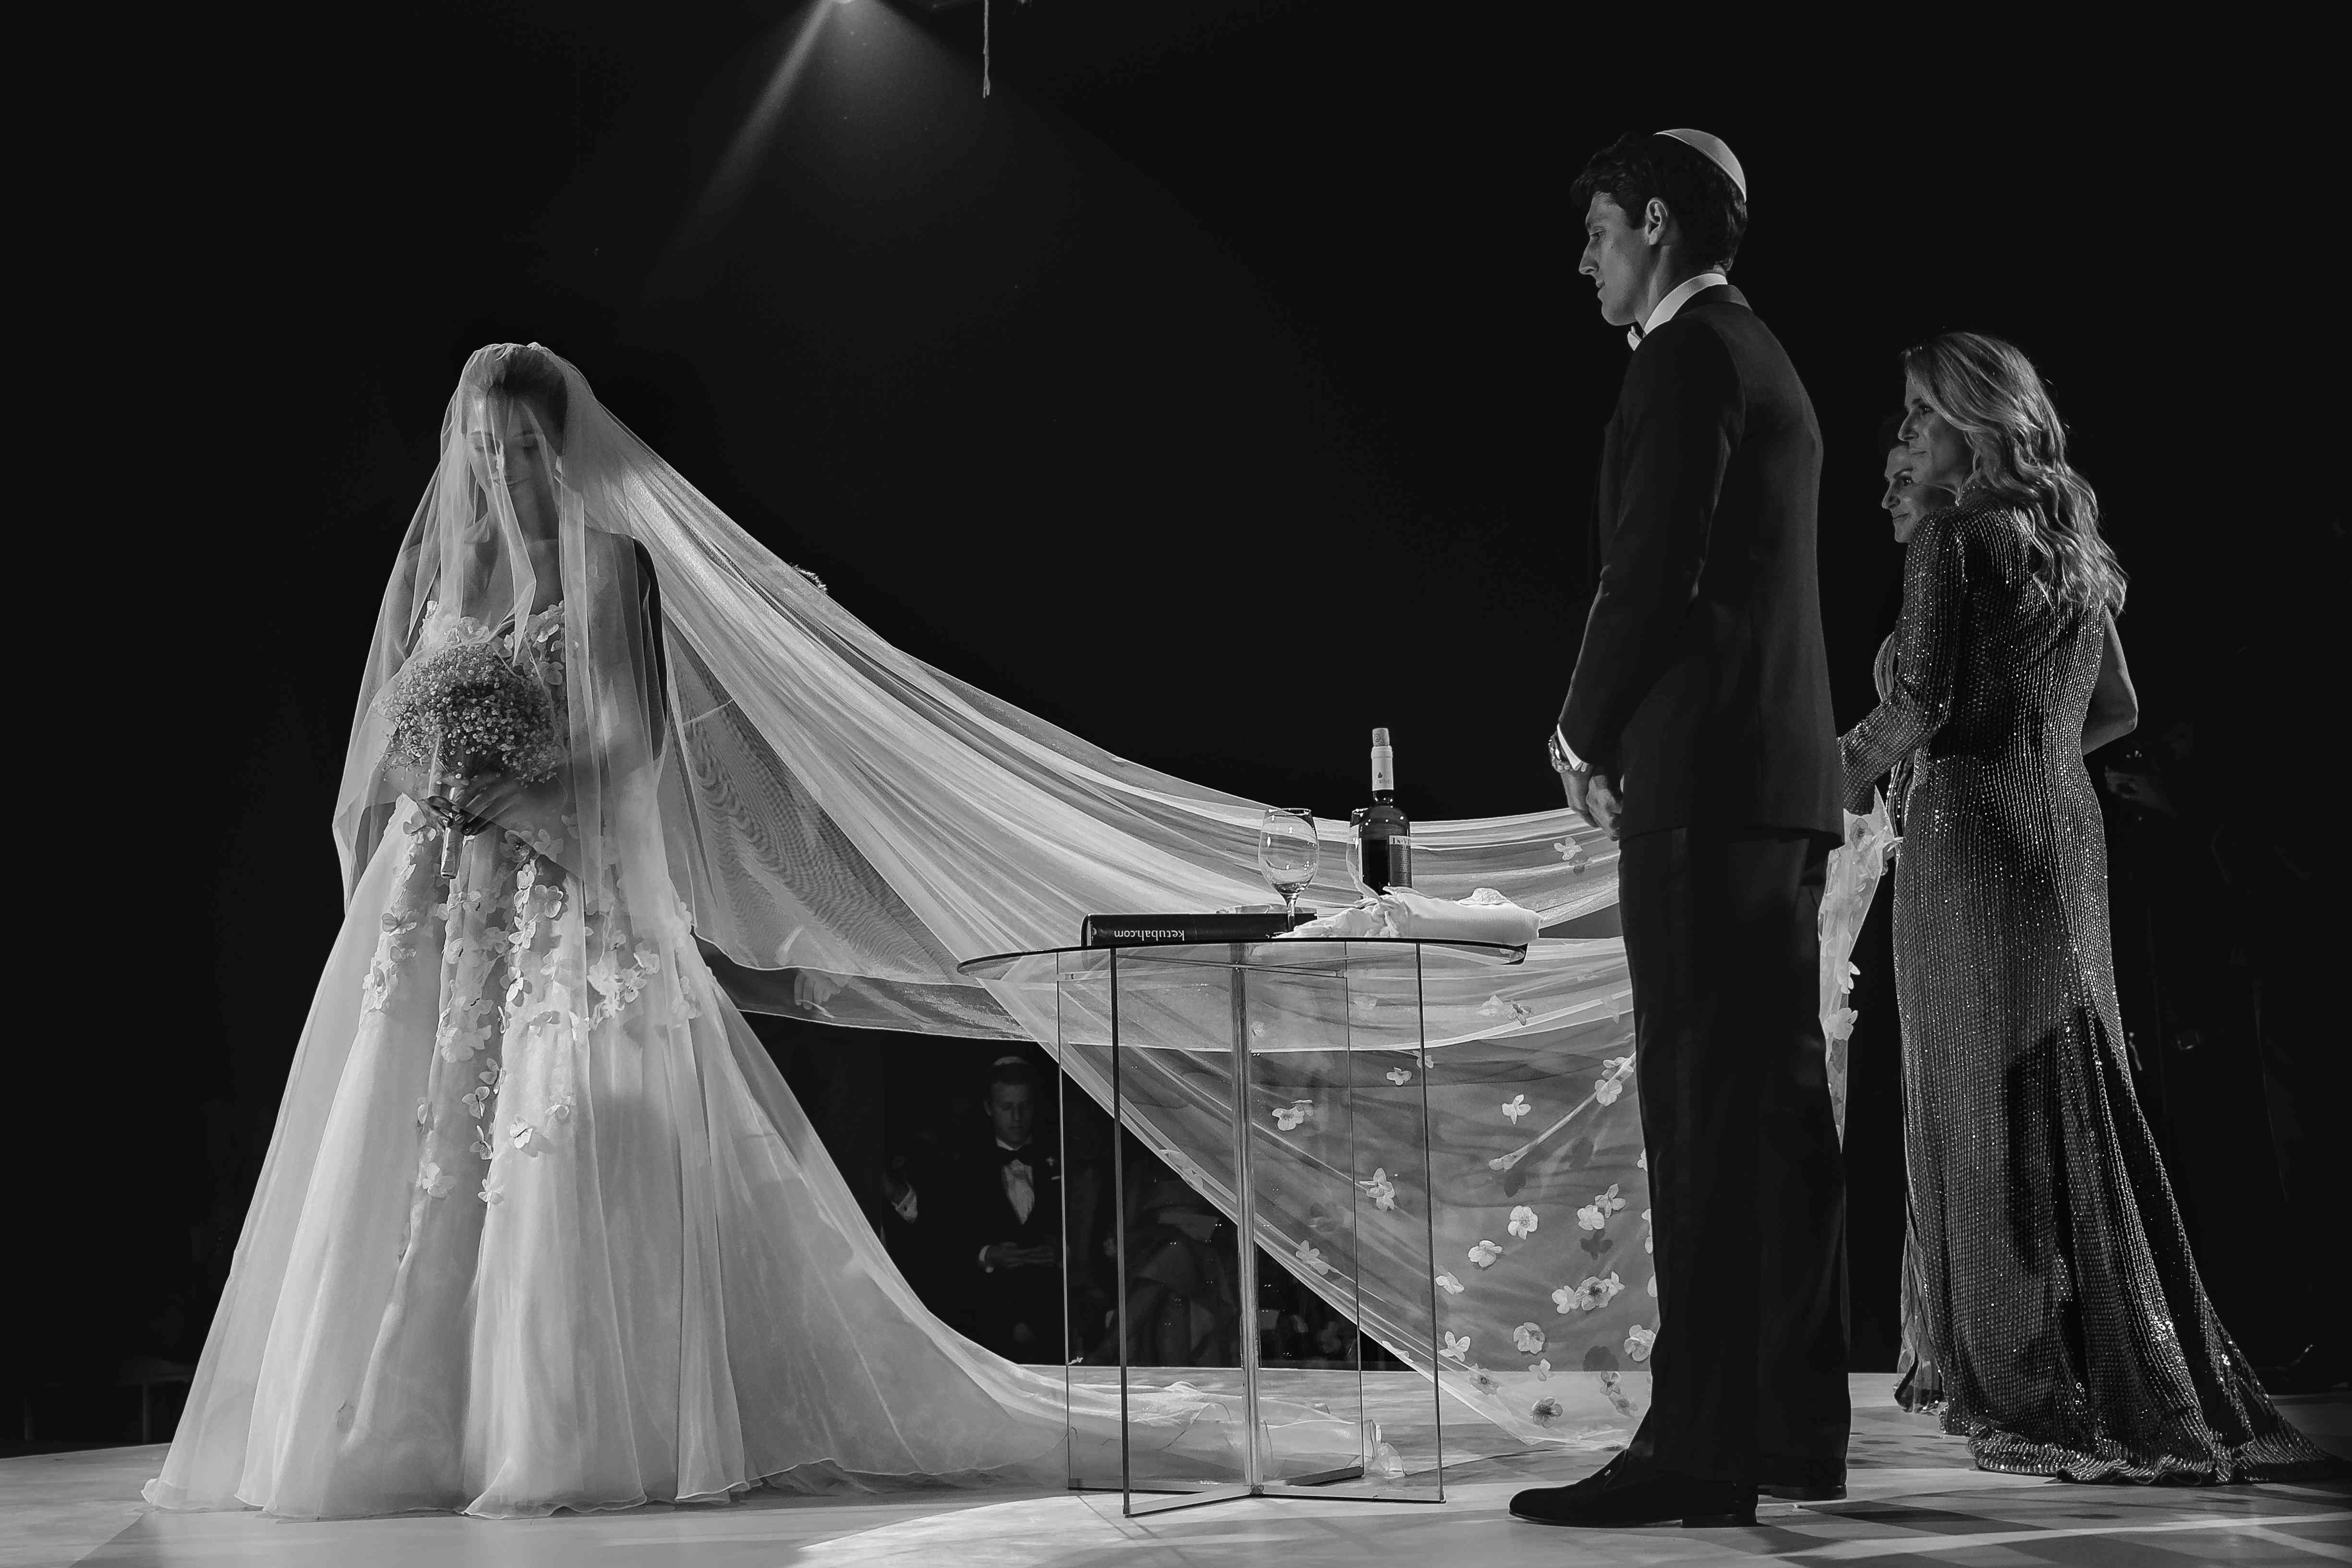 <p>Bride during ceremony with veil</p><br><br>